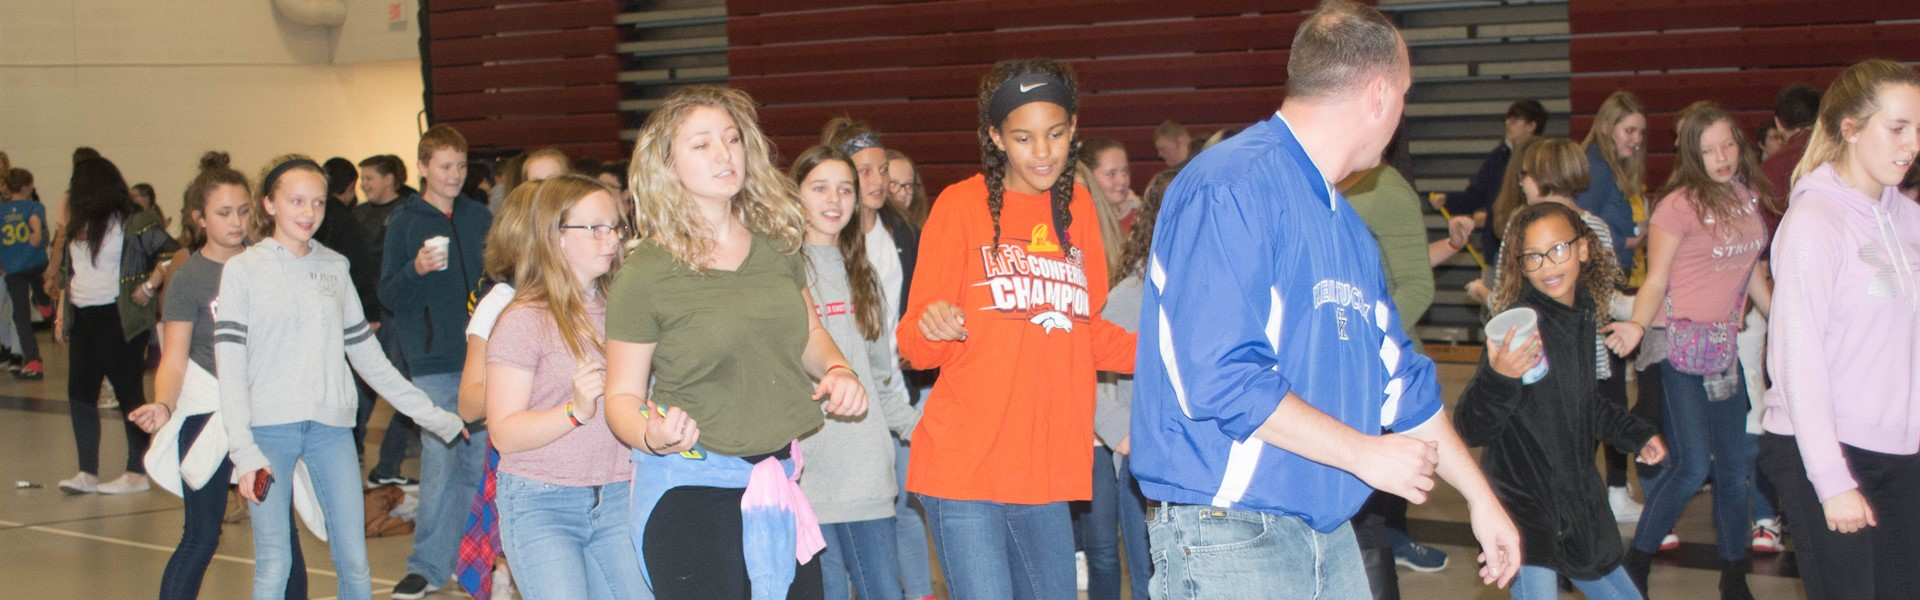 Mr. Ritchie doing the Cupid Shuffle